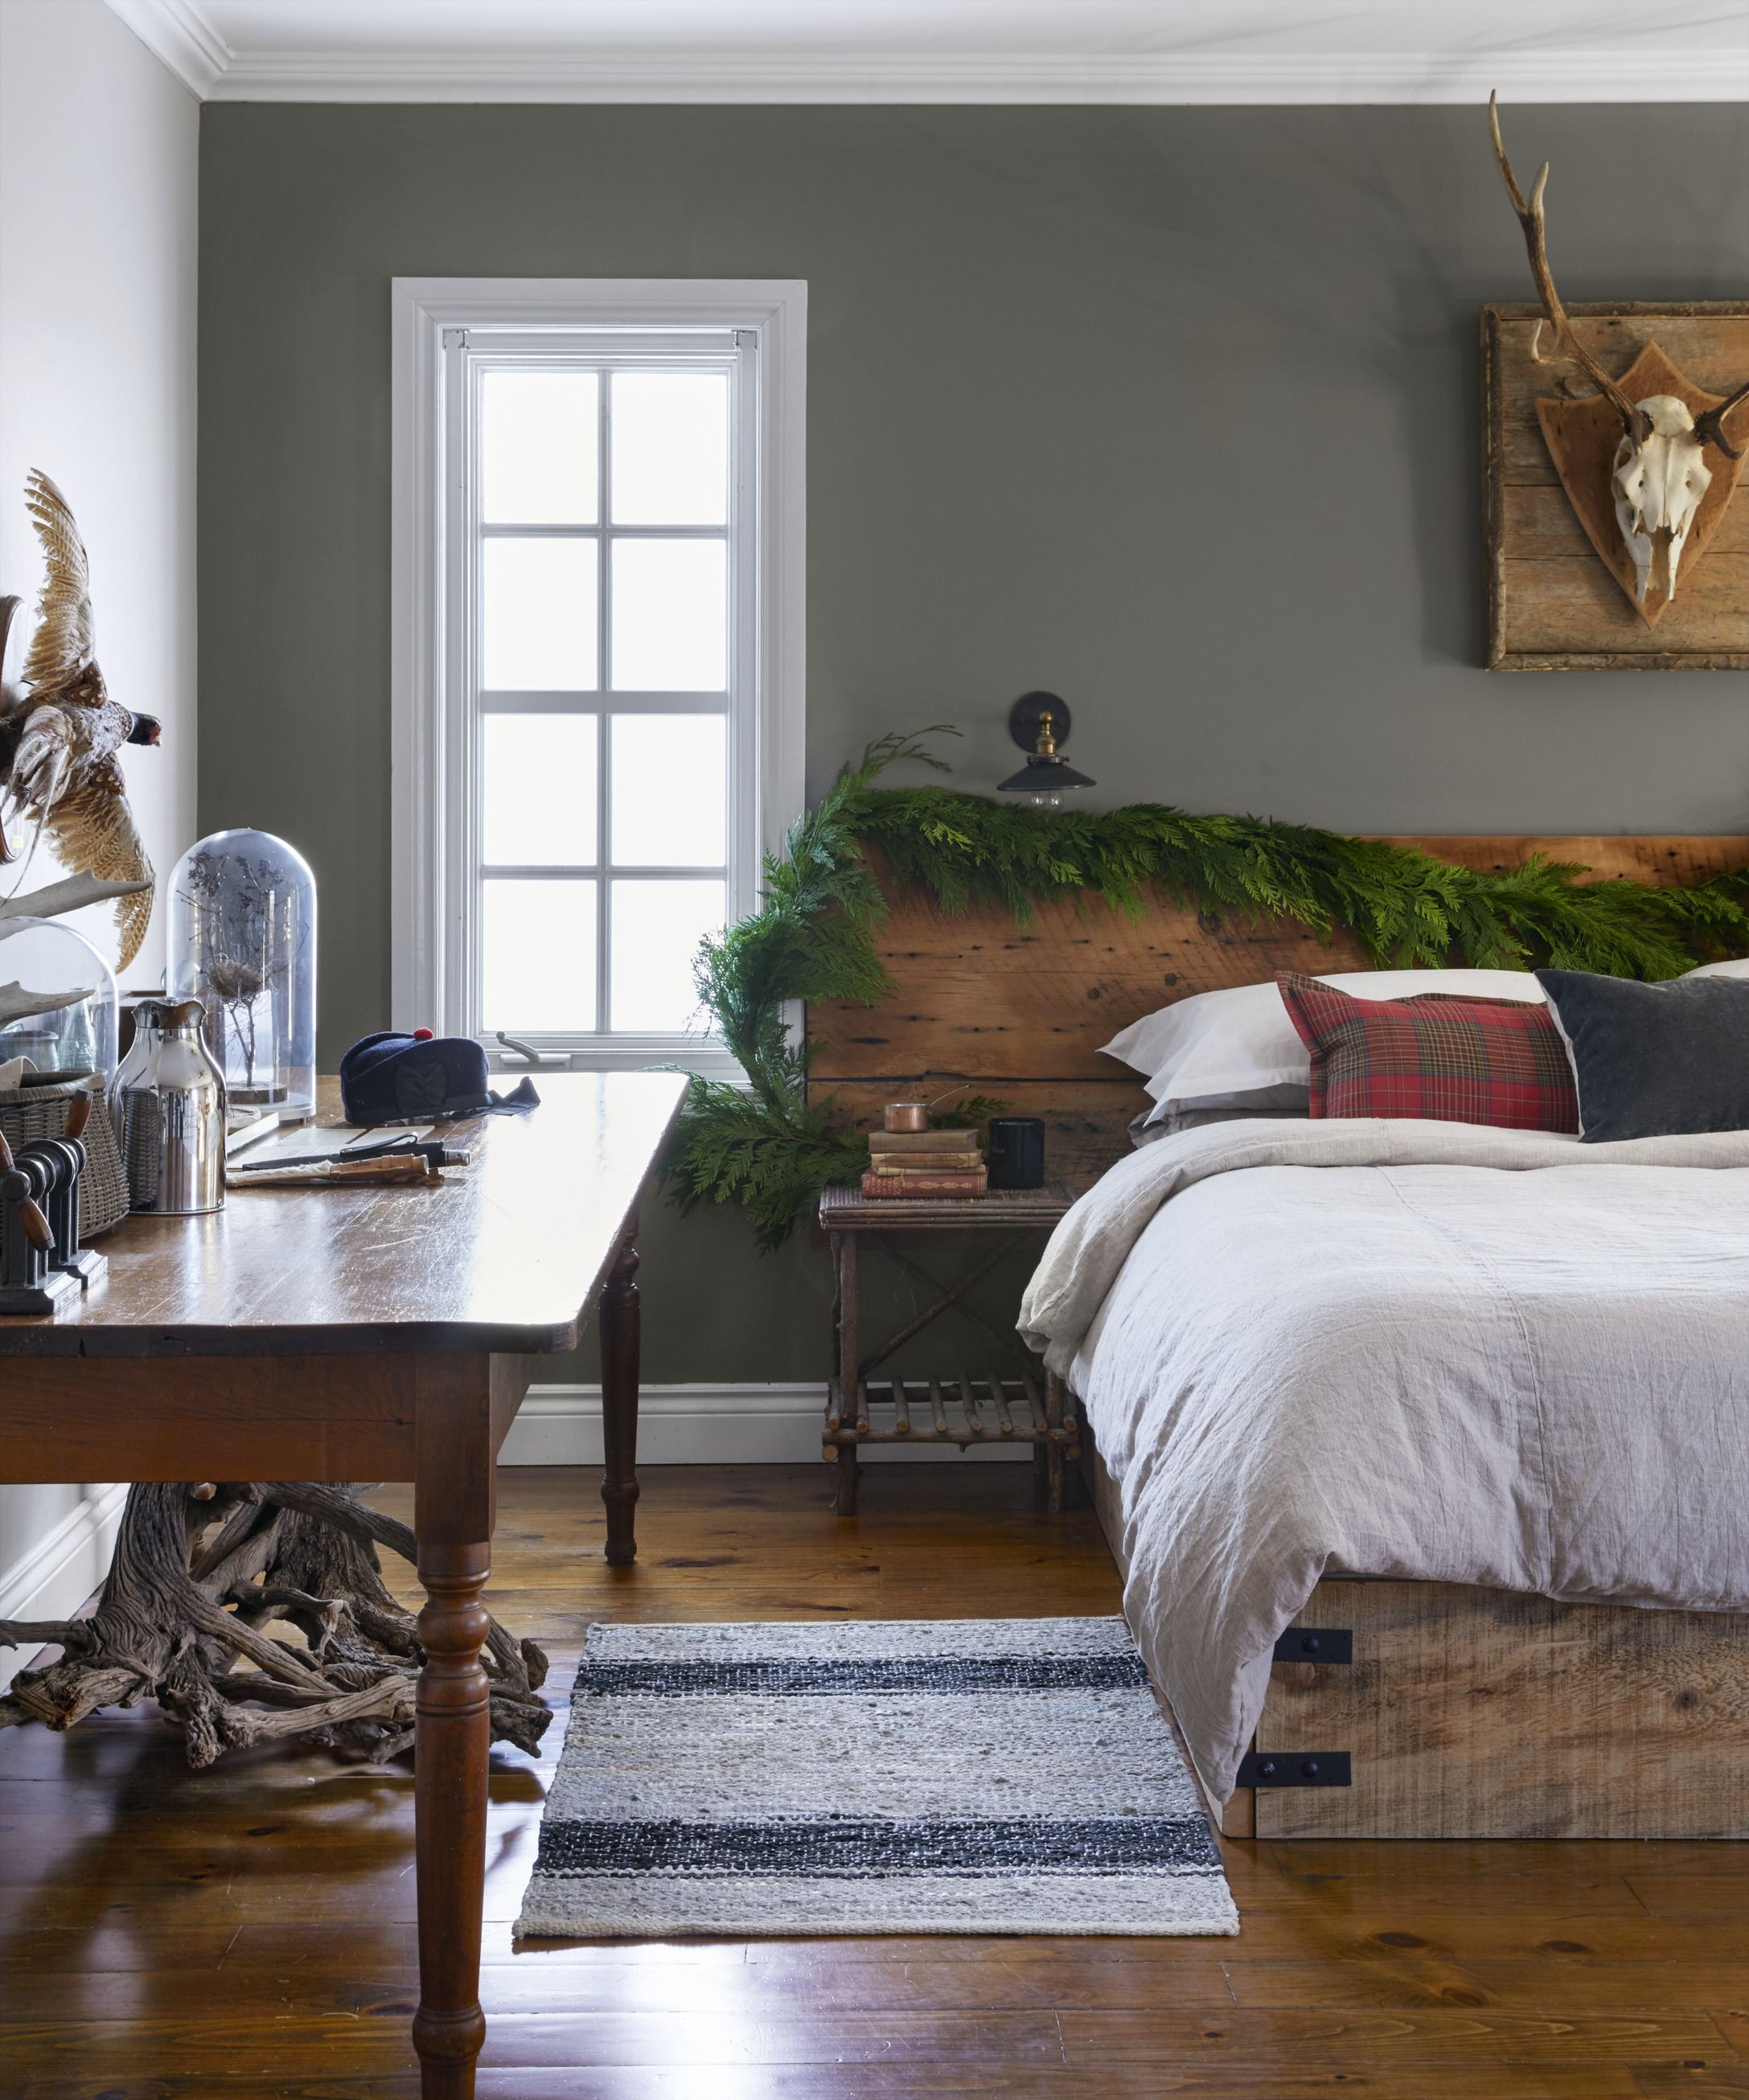 Decorating with Antique Furniture New 60 Best Farmhouse Style Ideas Rustic Home Decor